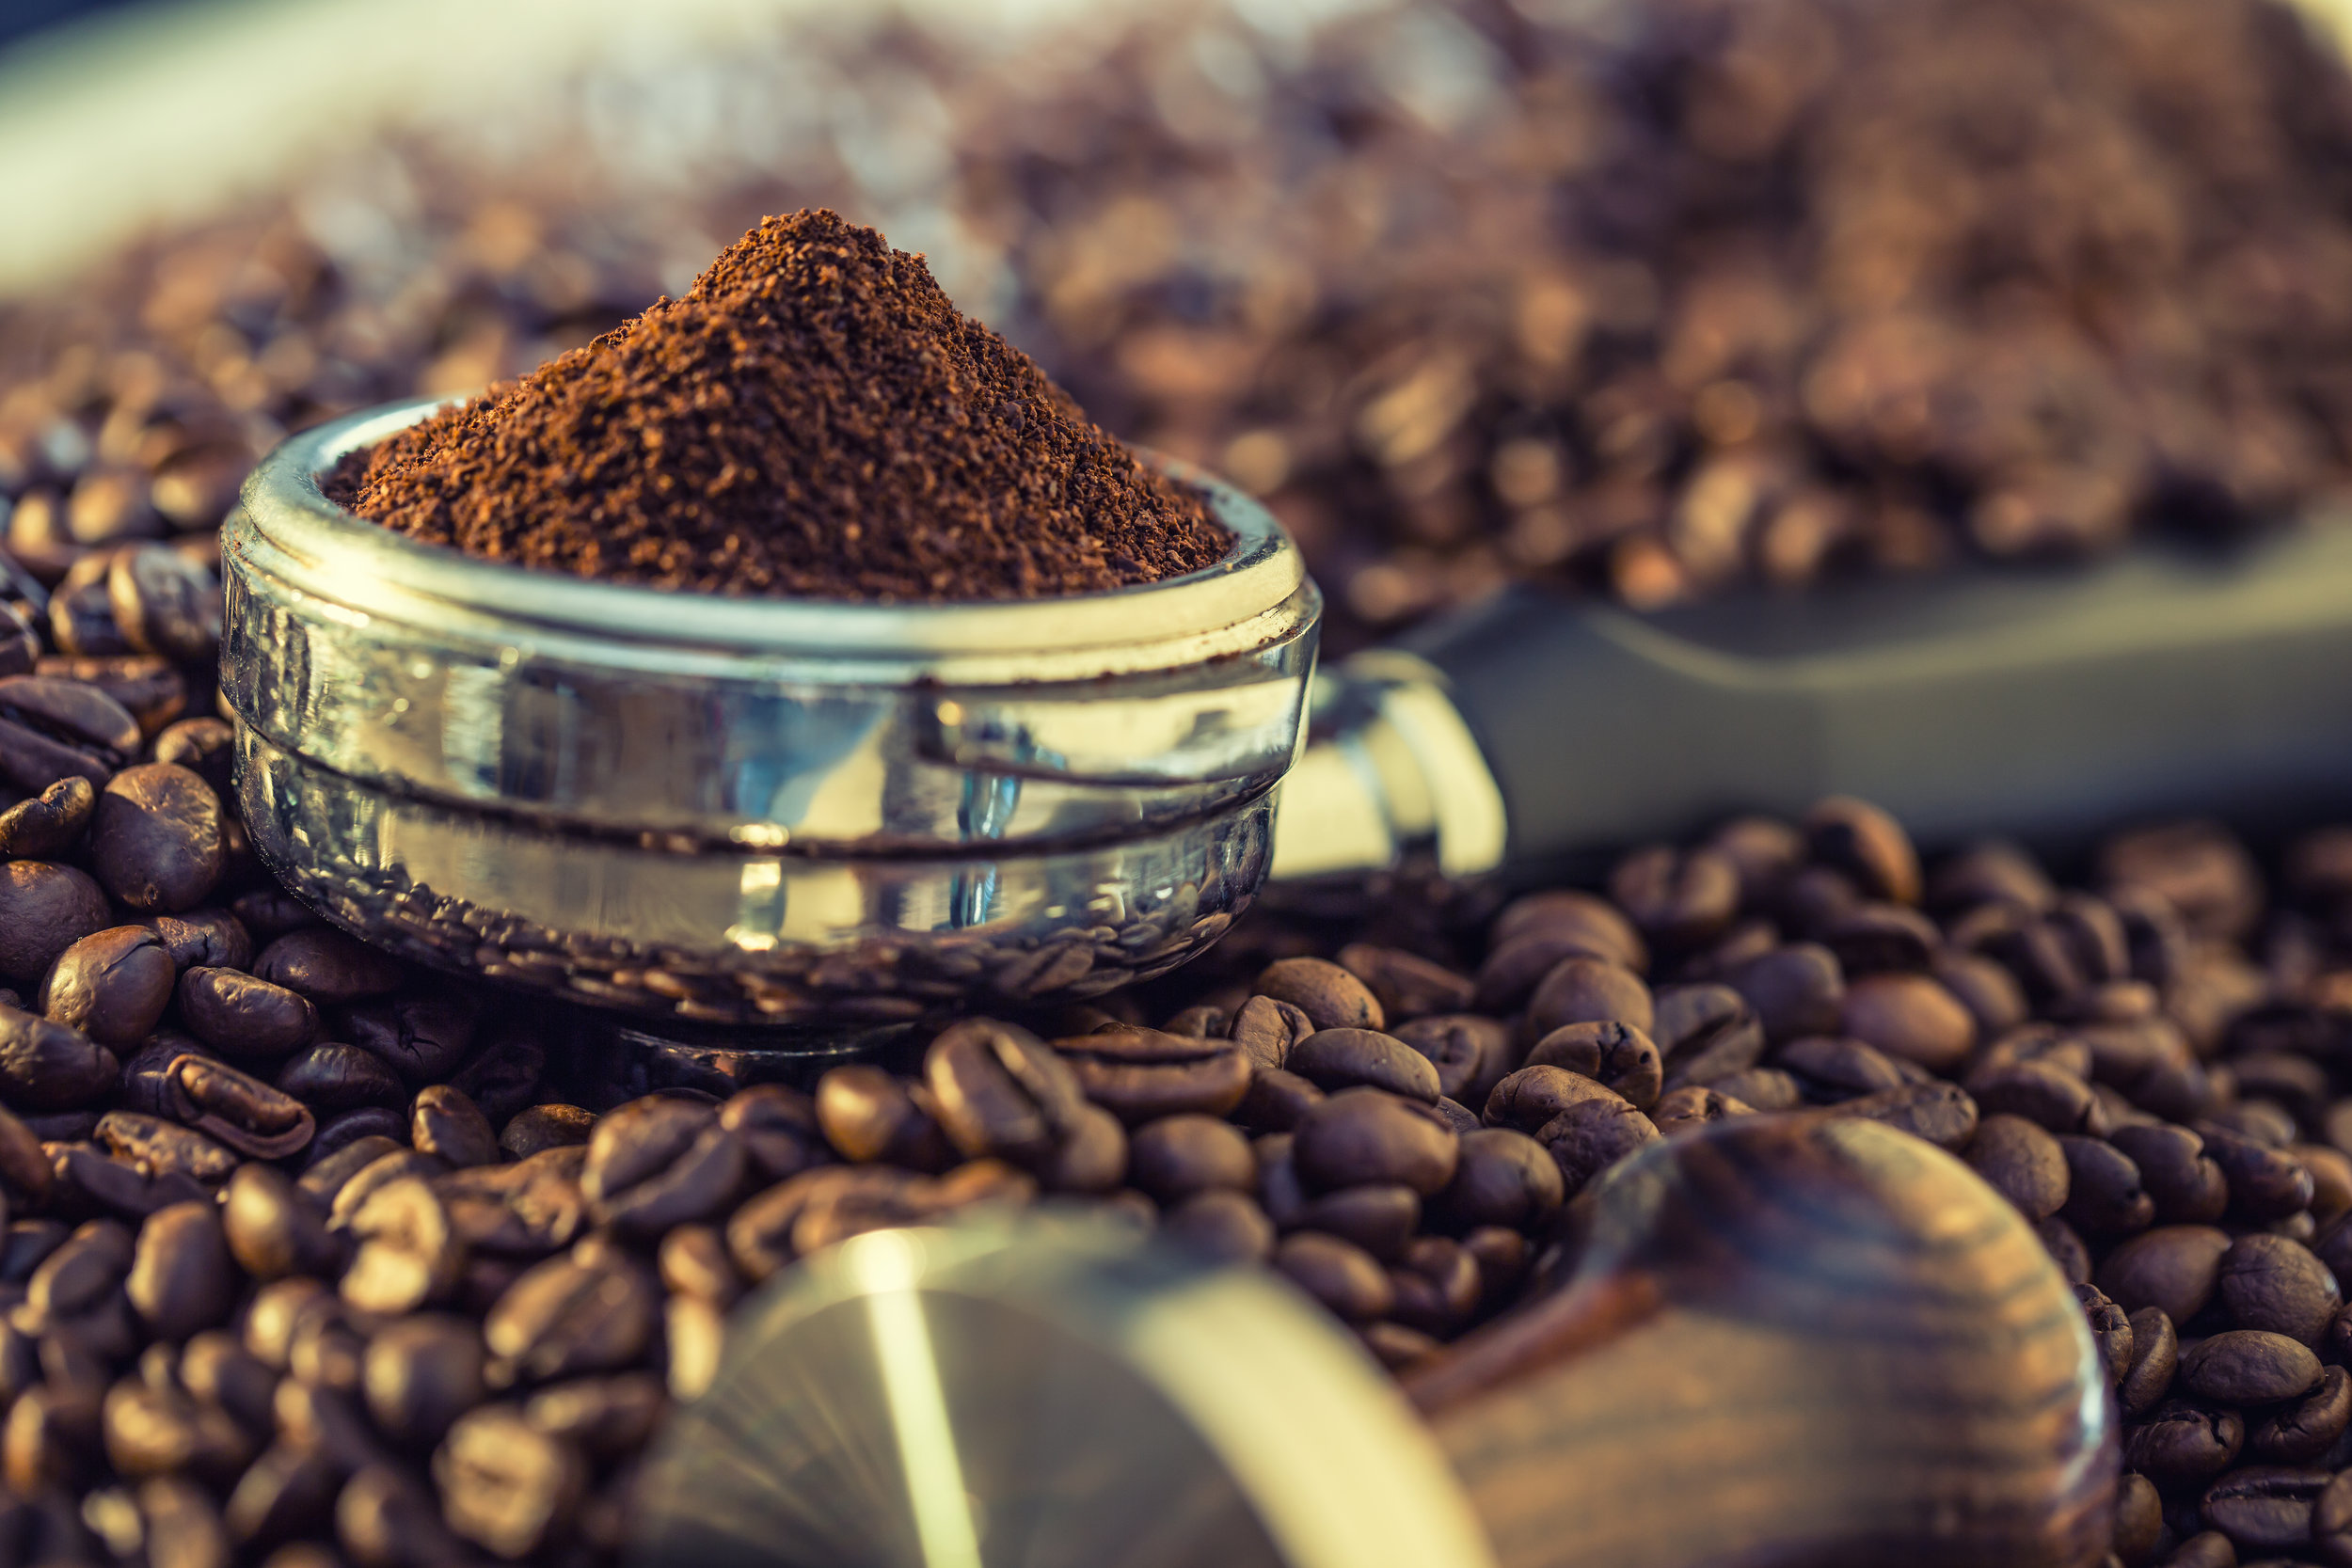 """coffee consumption may help prevent several chronic diseases, including type 2 DM [Diabetes mellitus], Parkinson's disease, and liver disease.""  -"